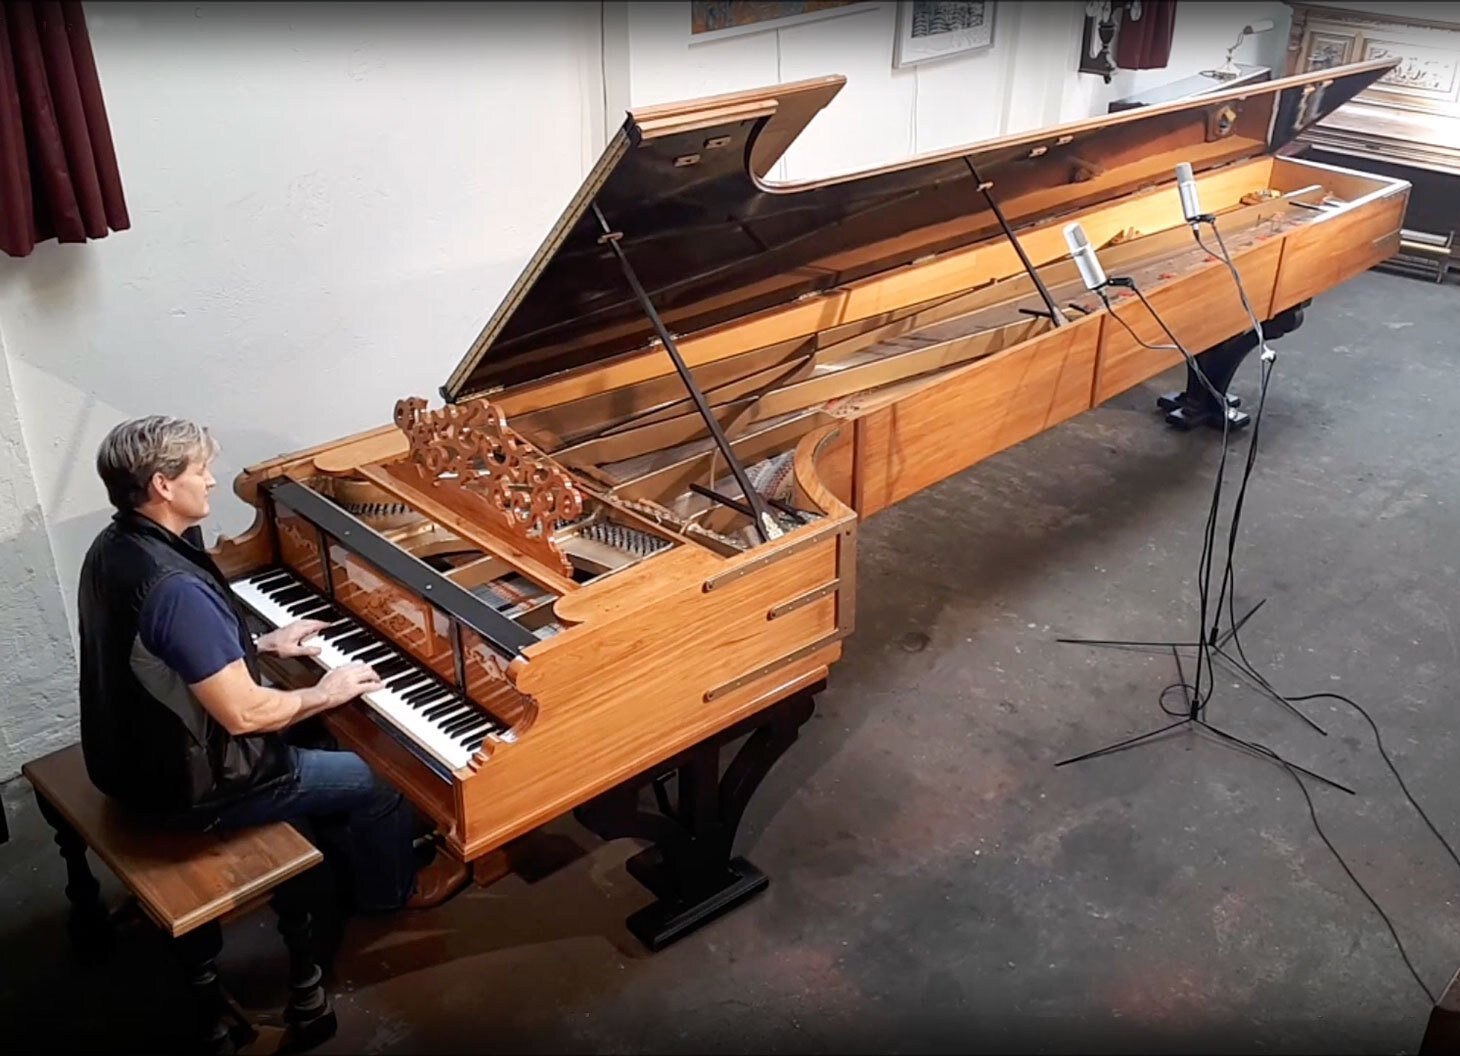 80: The world's largest piano was built by a 15 year old in New Zealand. It took him 2 years.  https://www.youtube.com/watch?v=x57kcRdojrY